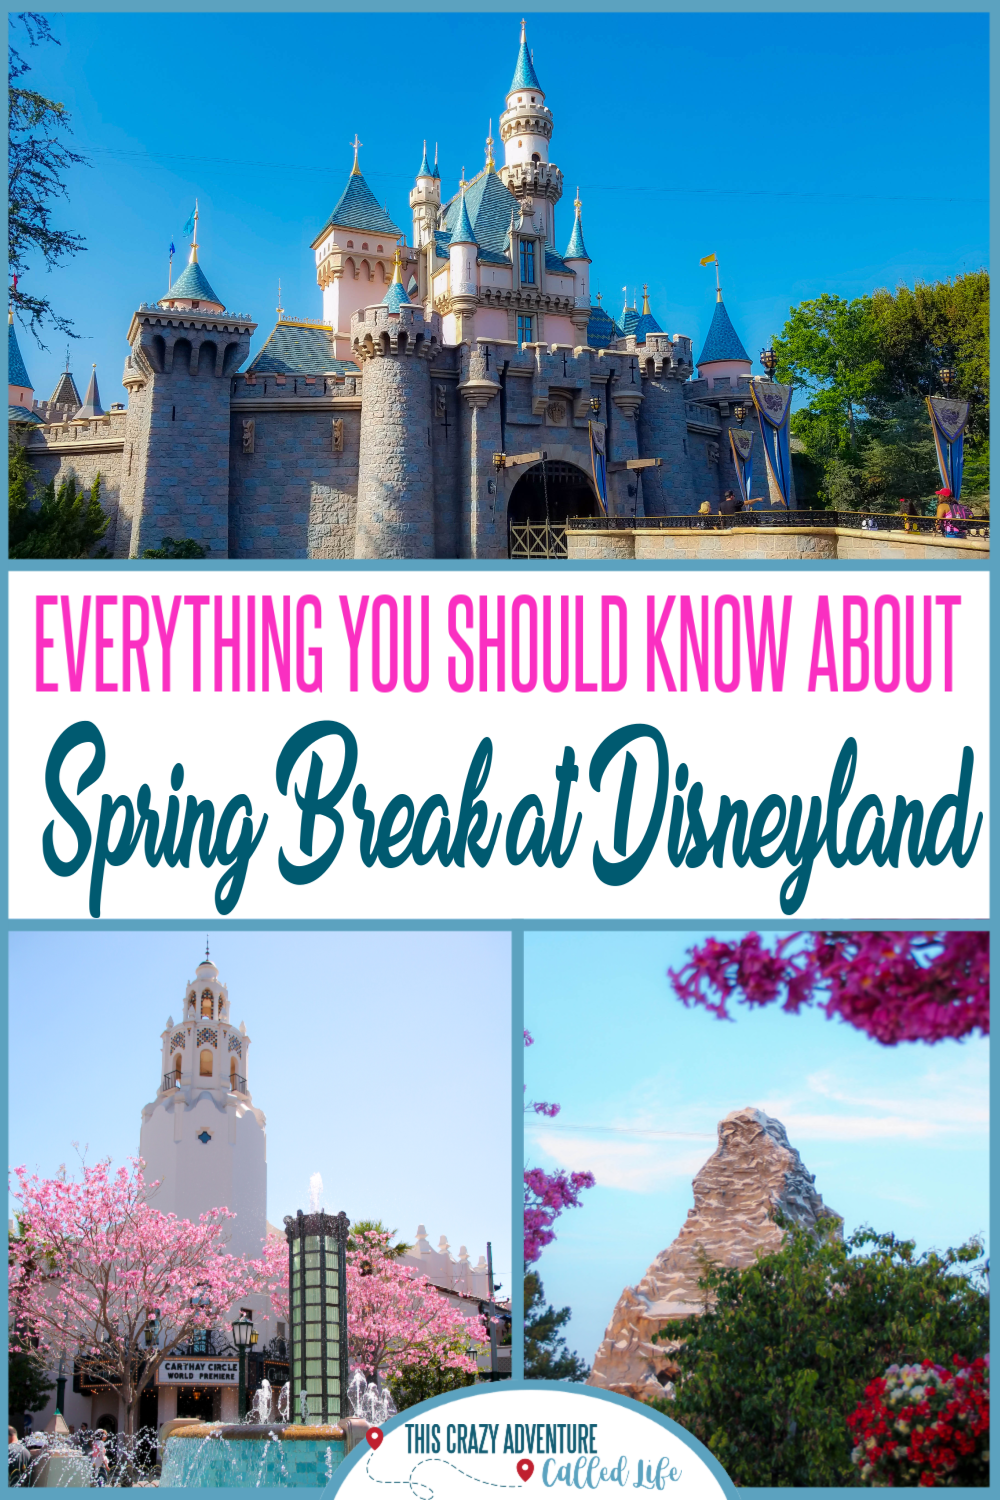 Debating if Spring Break at Disneyland is a good idea? Click through to get all the info about traveling to Disneyland with insider tips on spring break, including going with kids or for food and wine festival. Plus budget friendly tips for buying spring tickets and more. #DisneylandwithKids #Disneyland #ThisCrazyAdventureCalledLife #TravelwithKids